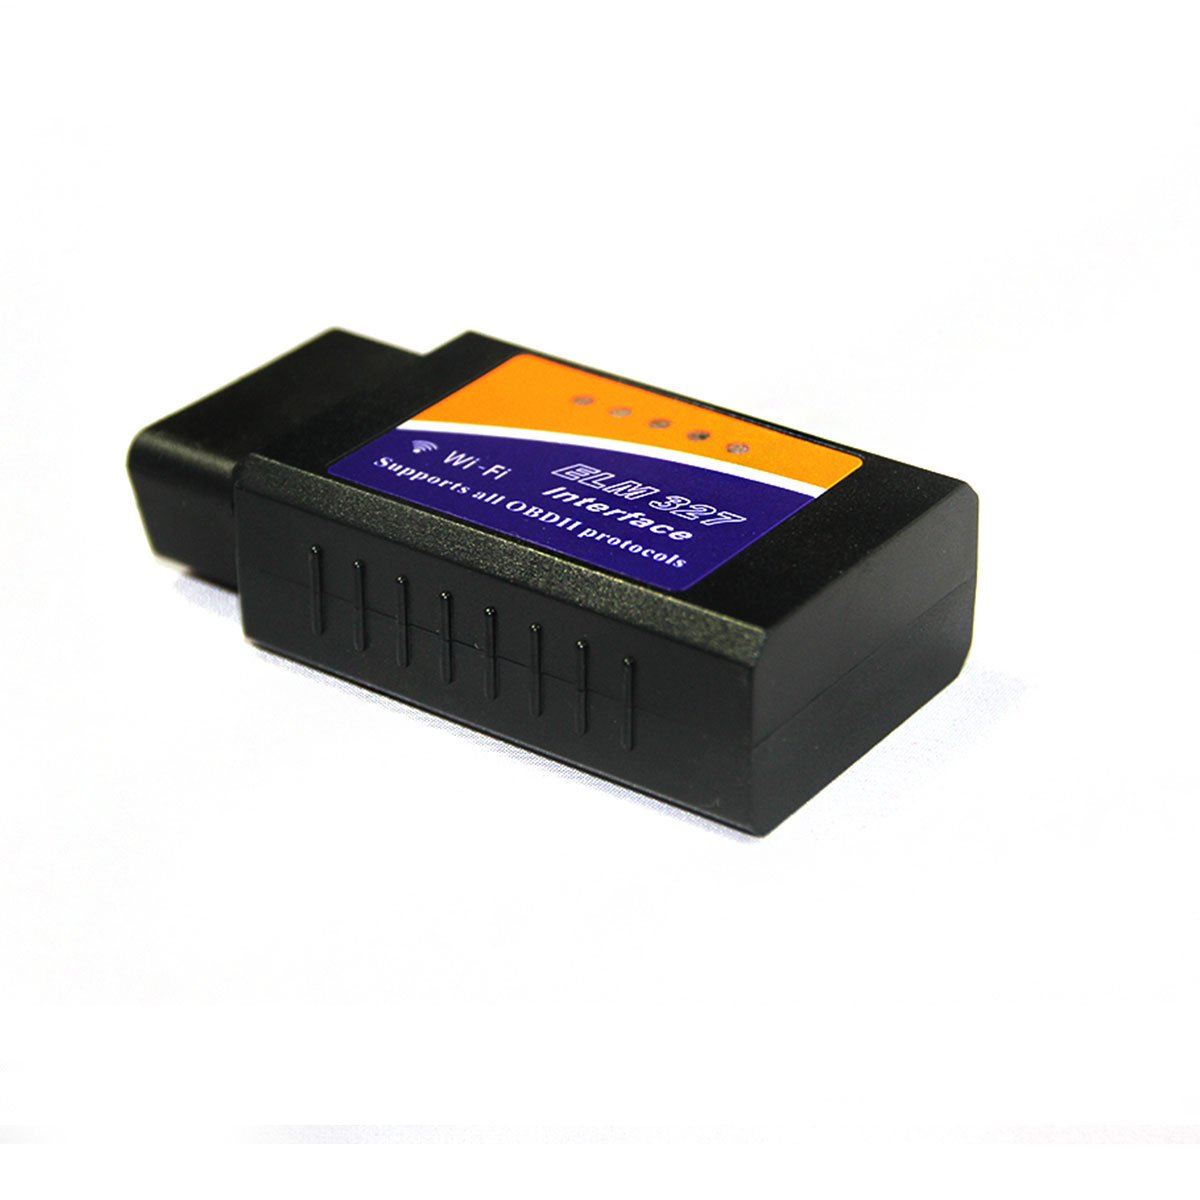 GSLL OBD2 Scanner Professional Diagnostic Car Scanner Tool ELM327 WIFI Wireless Interface Code Reader for IOS Android Windows